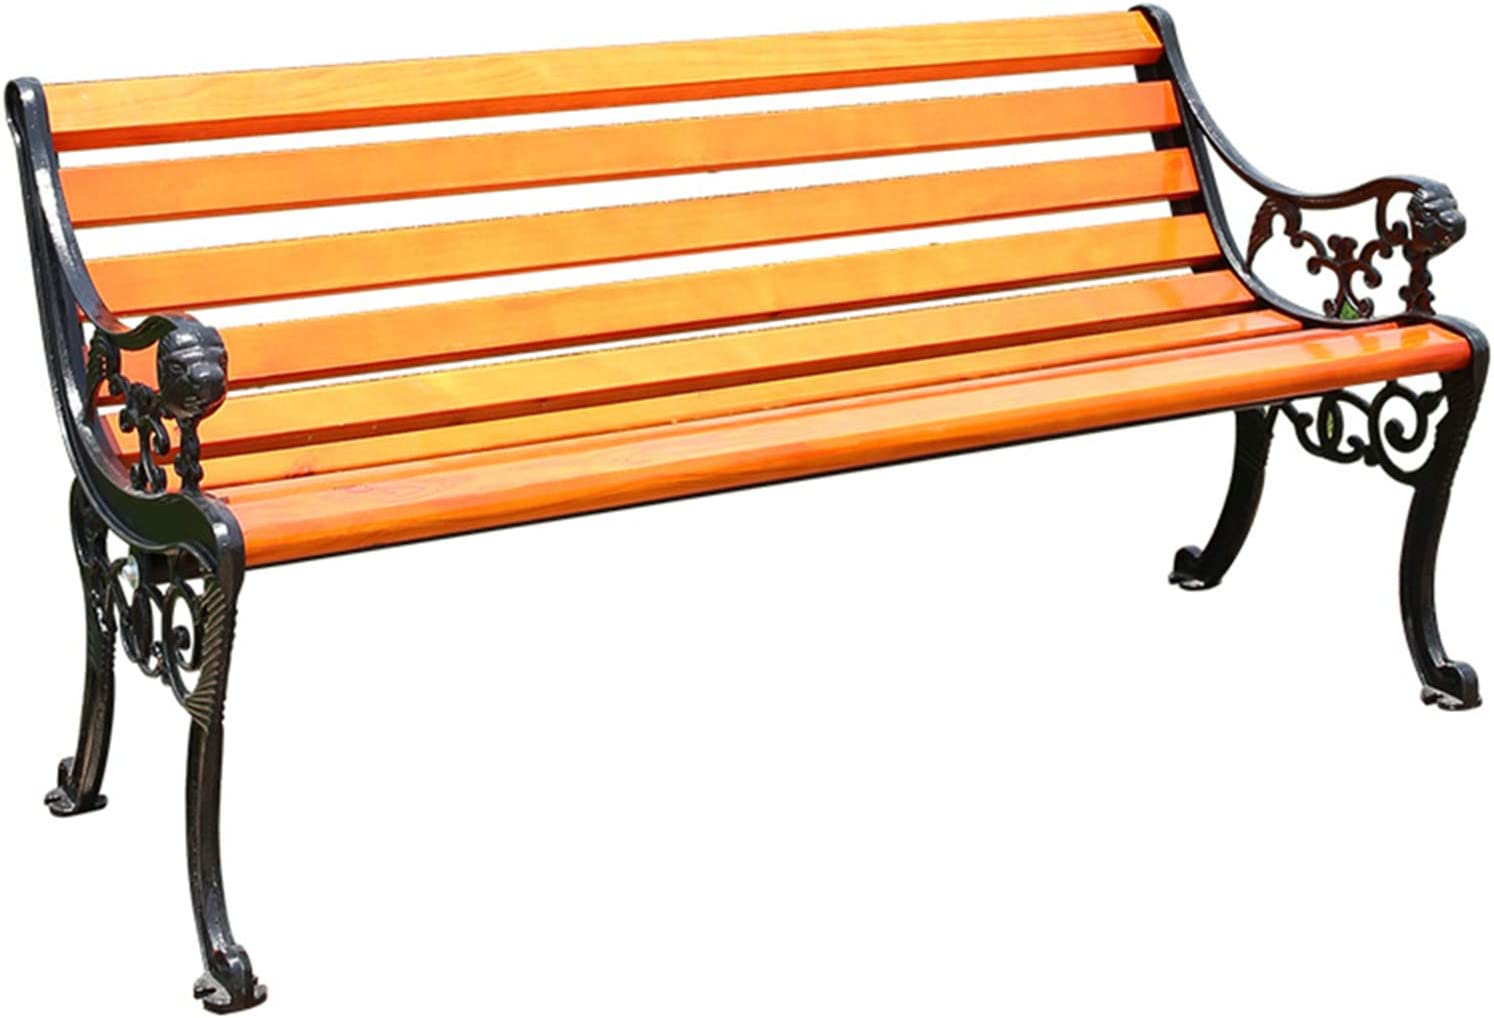 Terrace Park Bench Outdoor Bench, Balcony Garden Wooden slatted Bench with backrest and armrests, Cast Iron Frame and anticorrosive Solid Wood Seats, for porches, lawns, Entrance Chairs